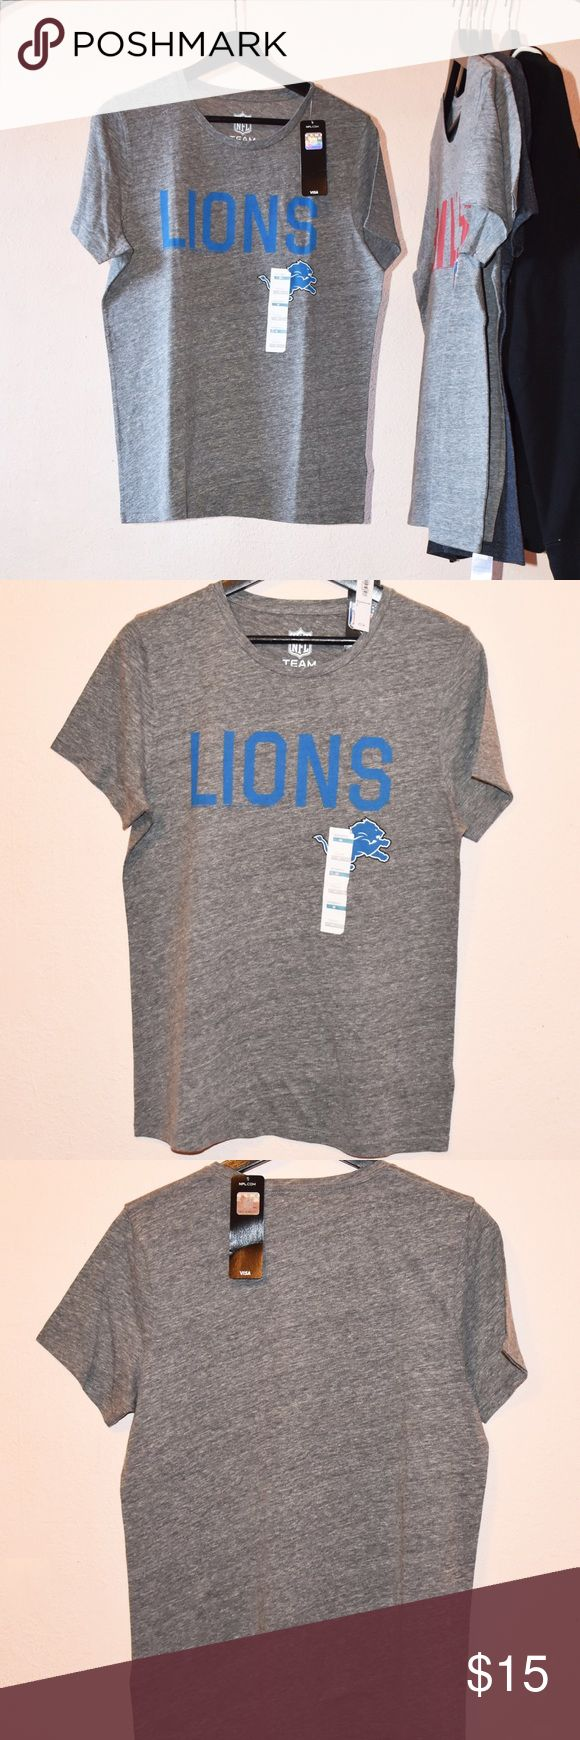 Detroit Lions T-Shirt NEW NFL Team Apparel with Authenticity Sticker Old Navy Tops Tees - Short Sleeve